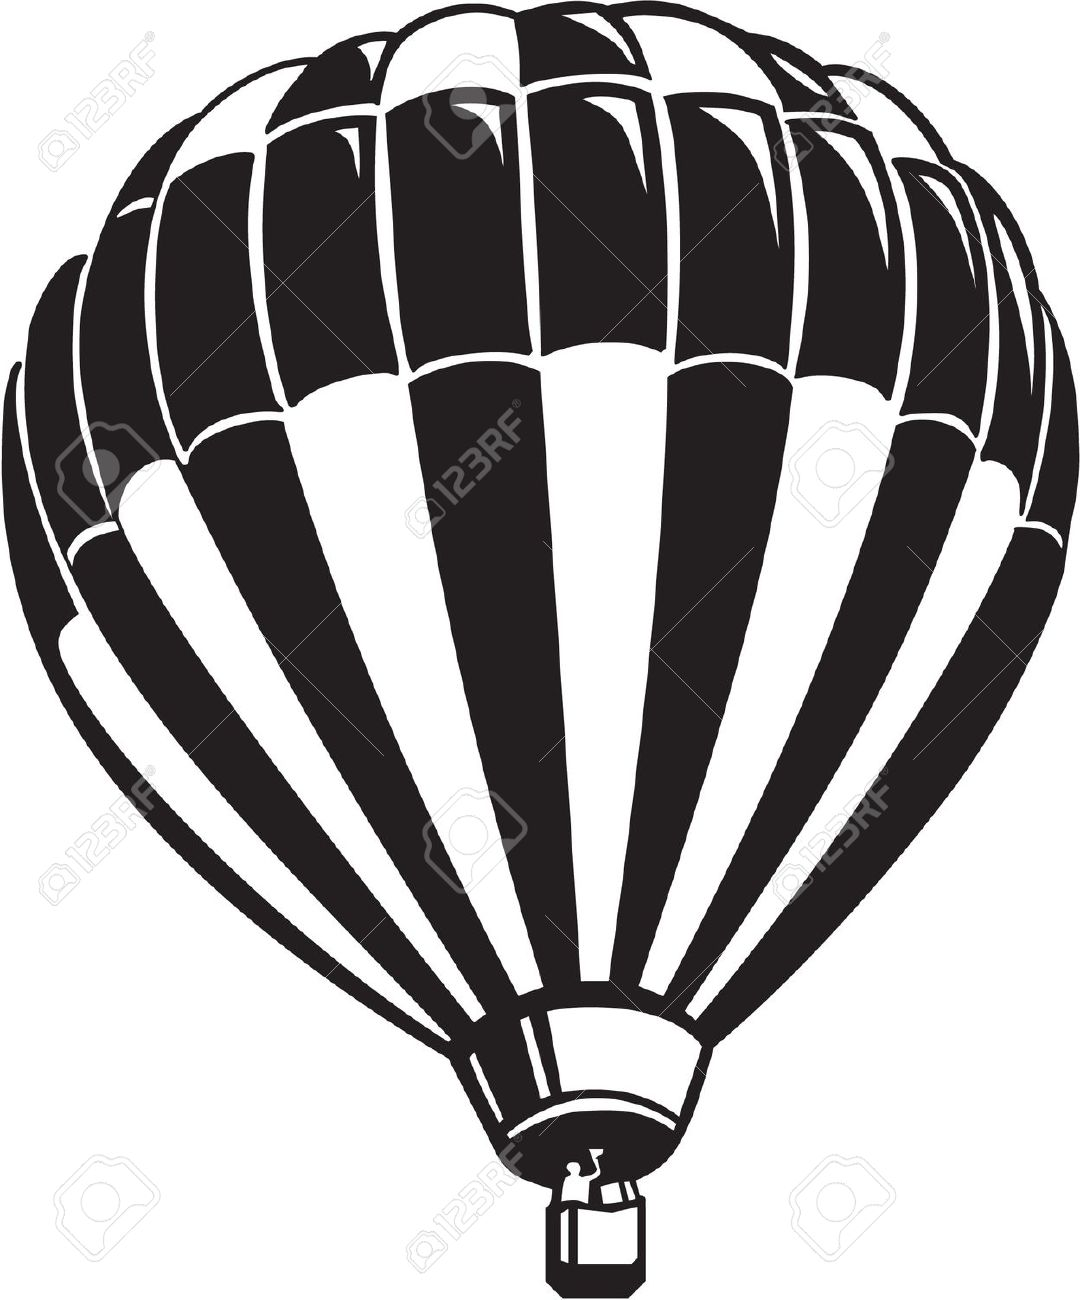 1080x1300 Hot Air Balloon Black White Aerial Balloon Clipart Black